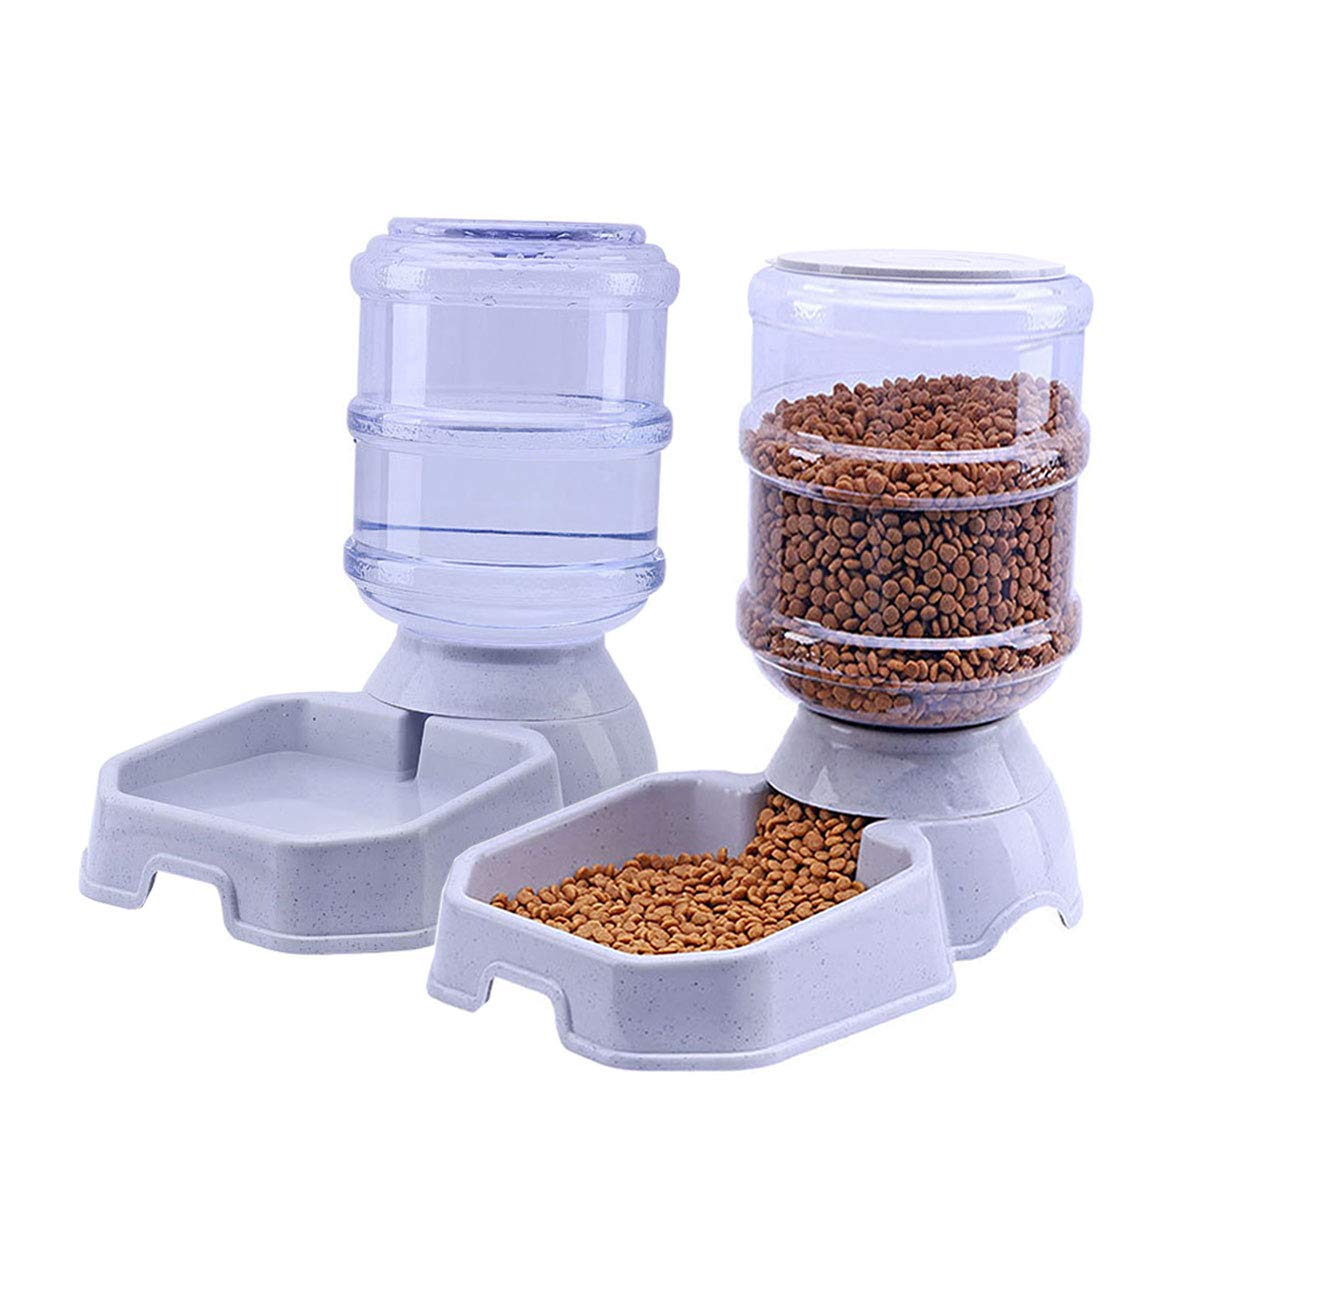 Chuanyue Pet Waterer Feeder Pet Automatic Waterer Dog Water Dispenser 1 Gallon Cat Dog Food and Water Dispenser